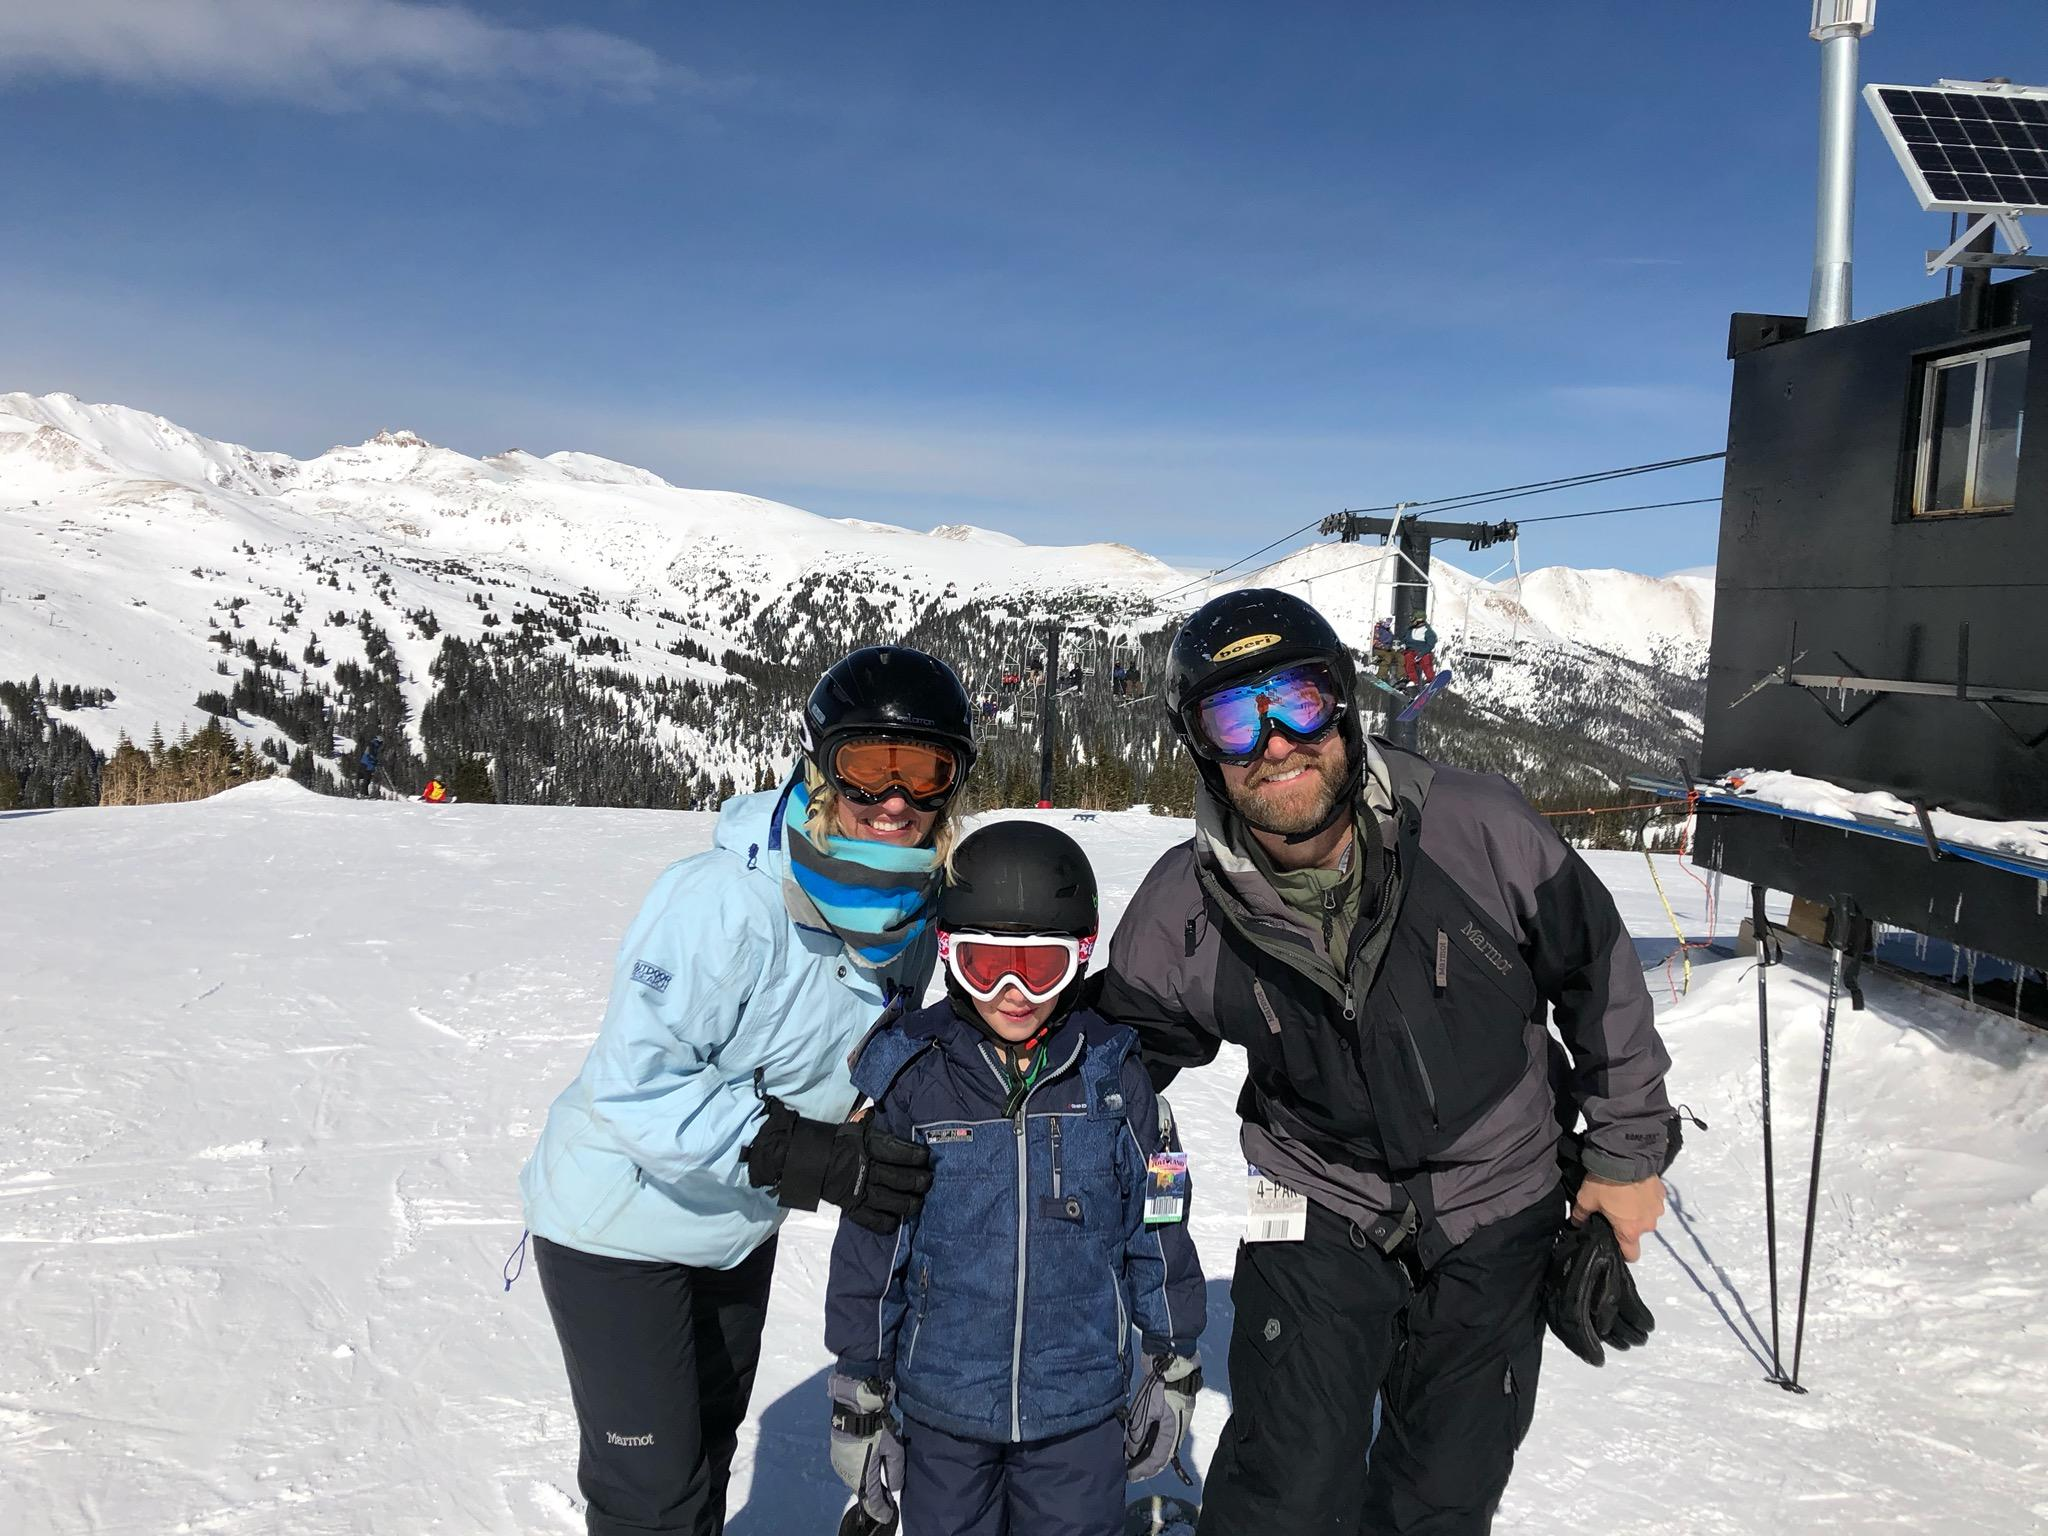 Casie Cook and her family standing on a snow covered mountain.